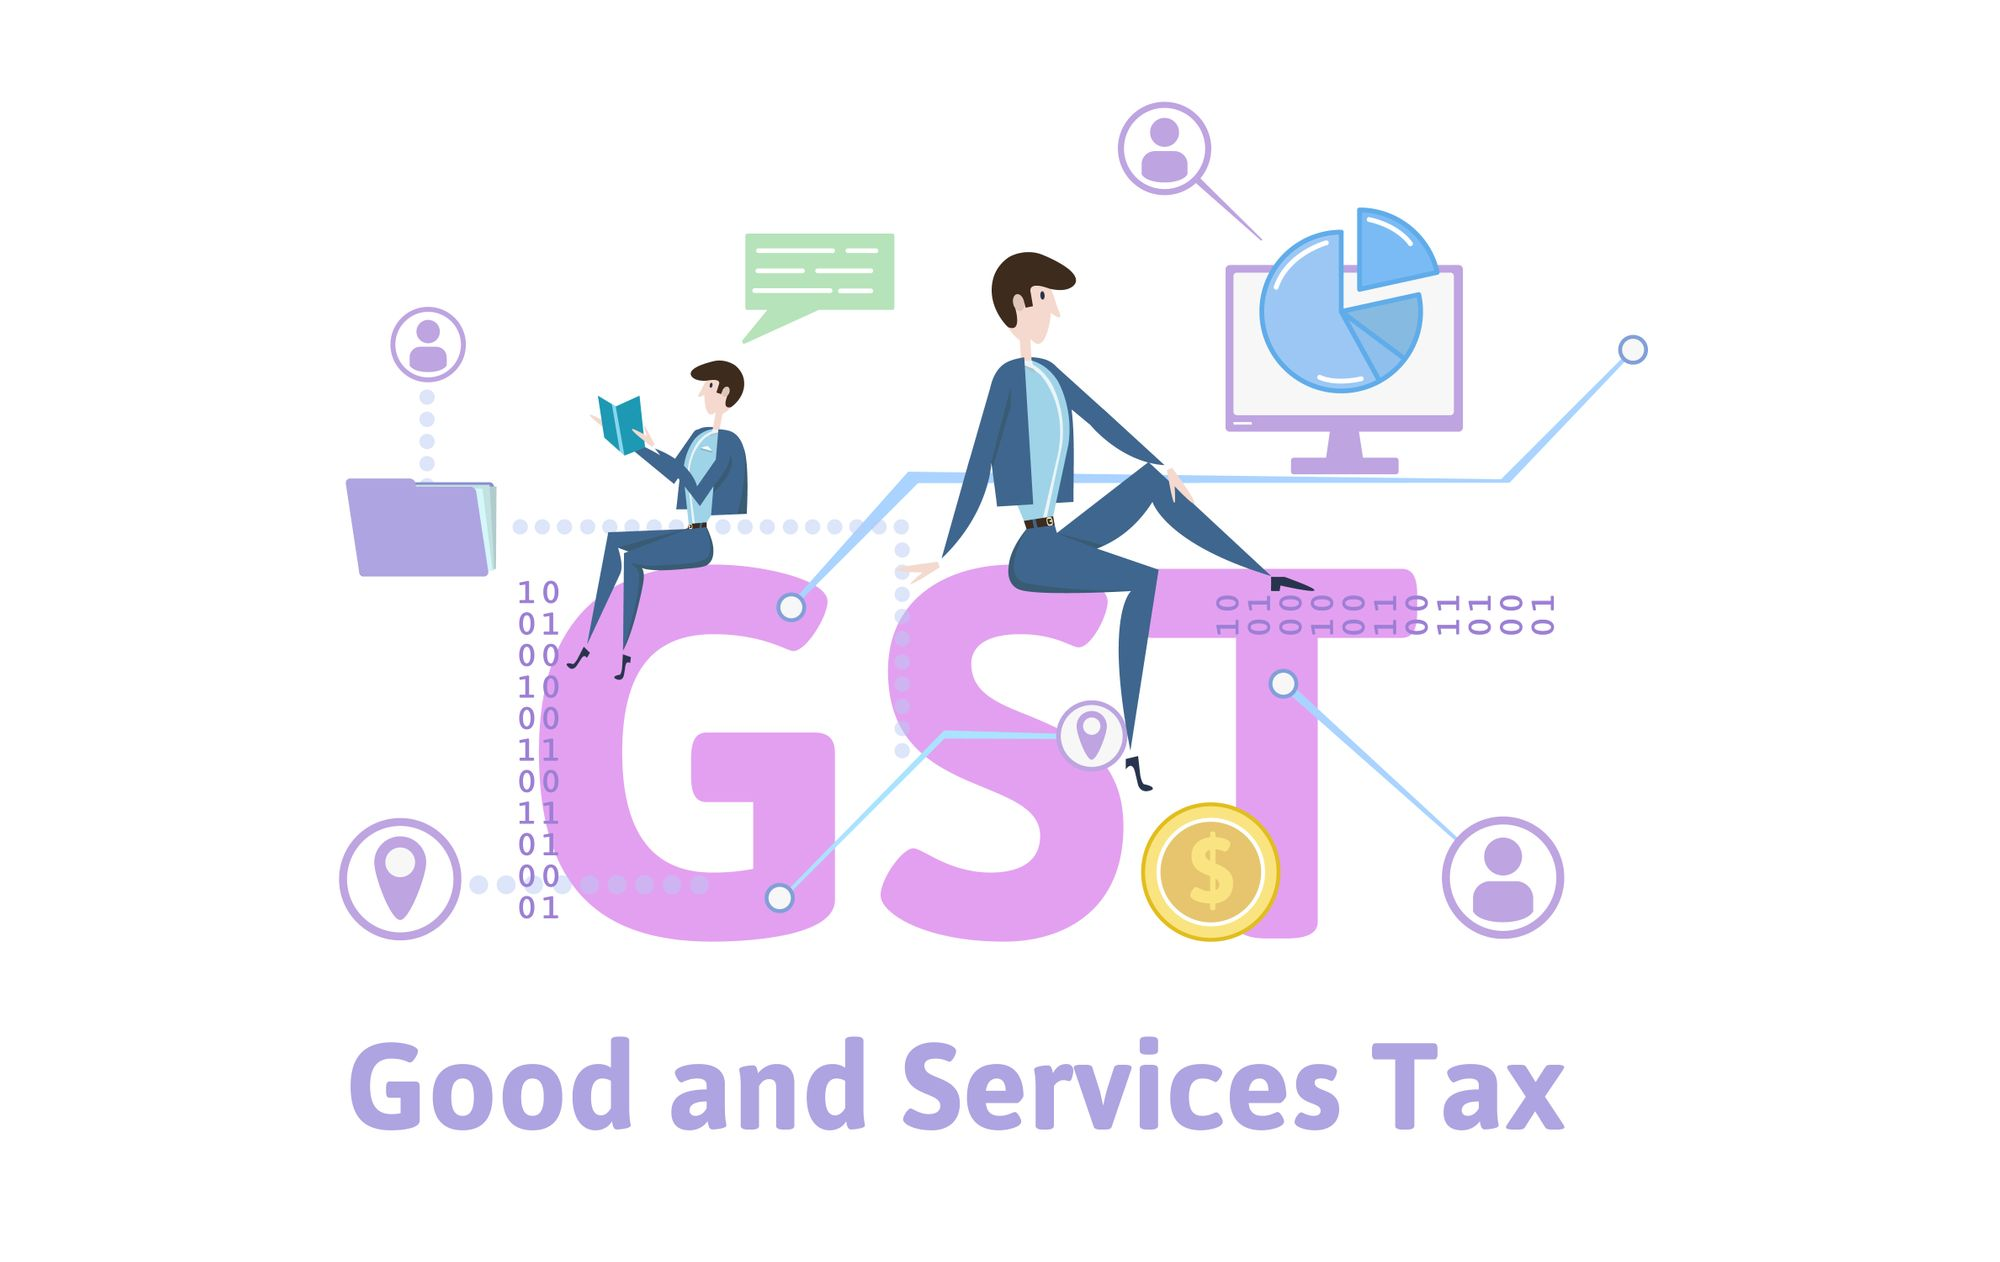 How to pay GST online? Step-by-Step Guide